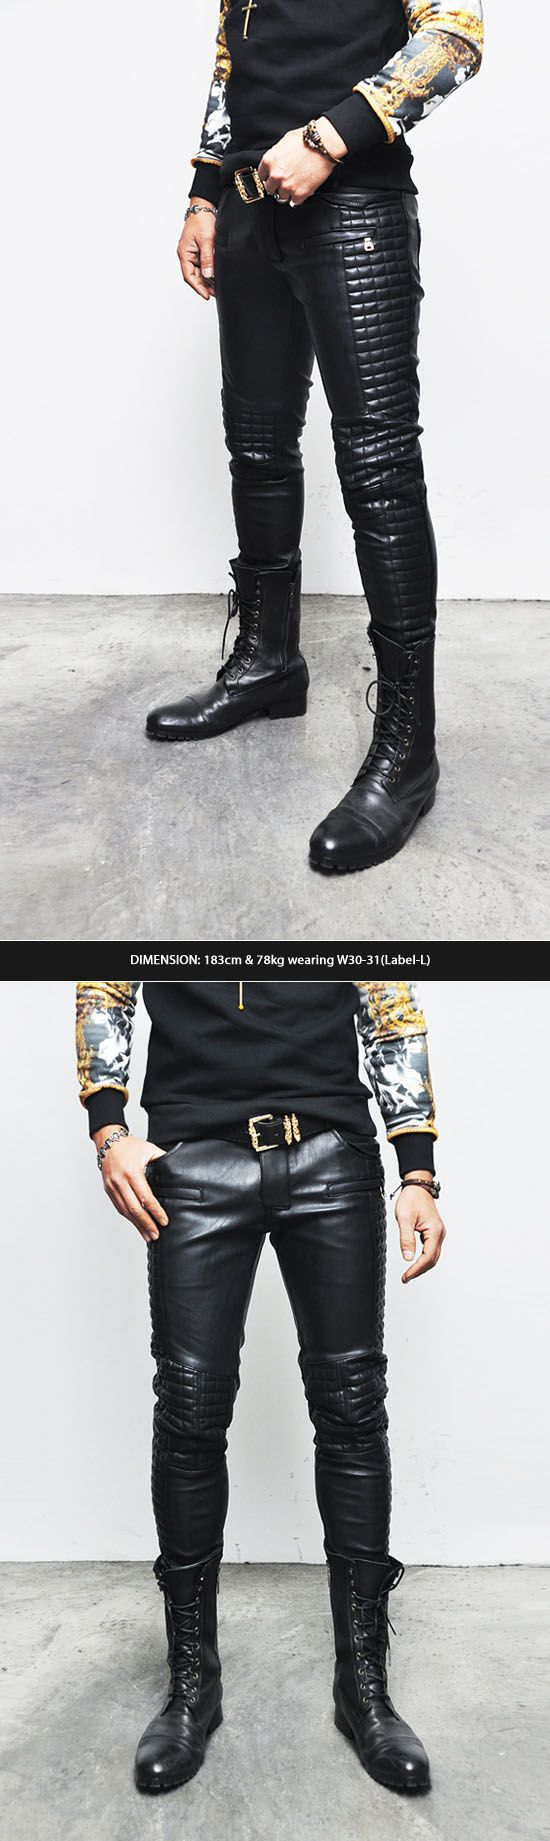 Bottoms :: Pants :: F/W Homme Full Leather Quilt Biker Skinny-Pants 103 - Mens Fashion Clothing For An Attractive Guy Look